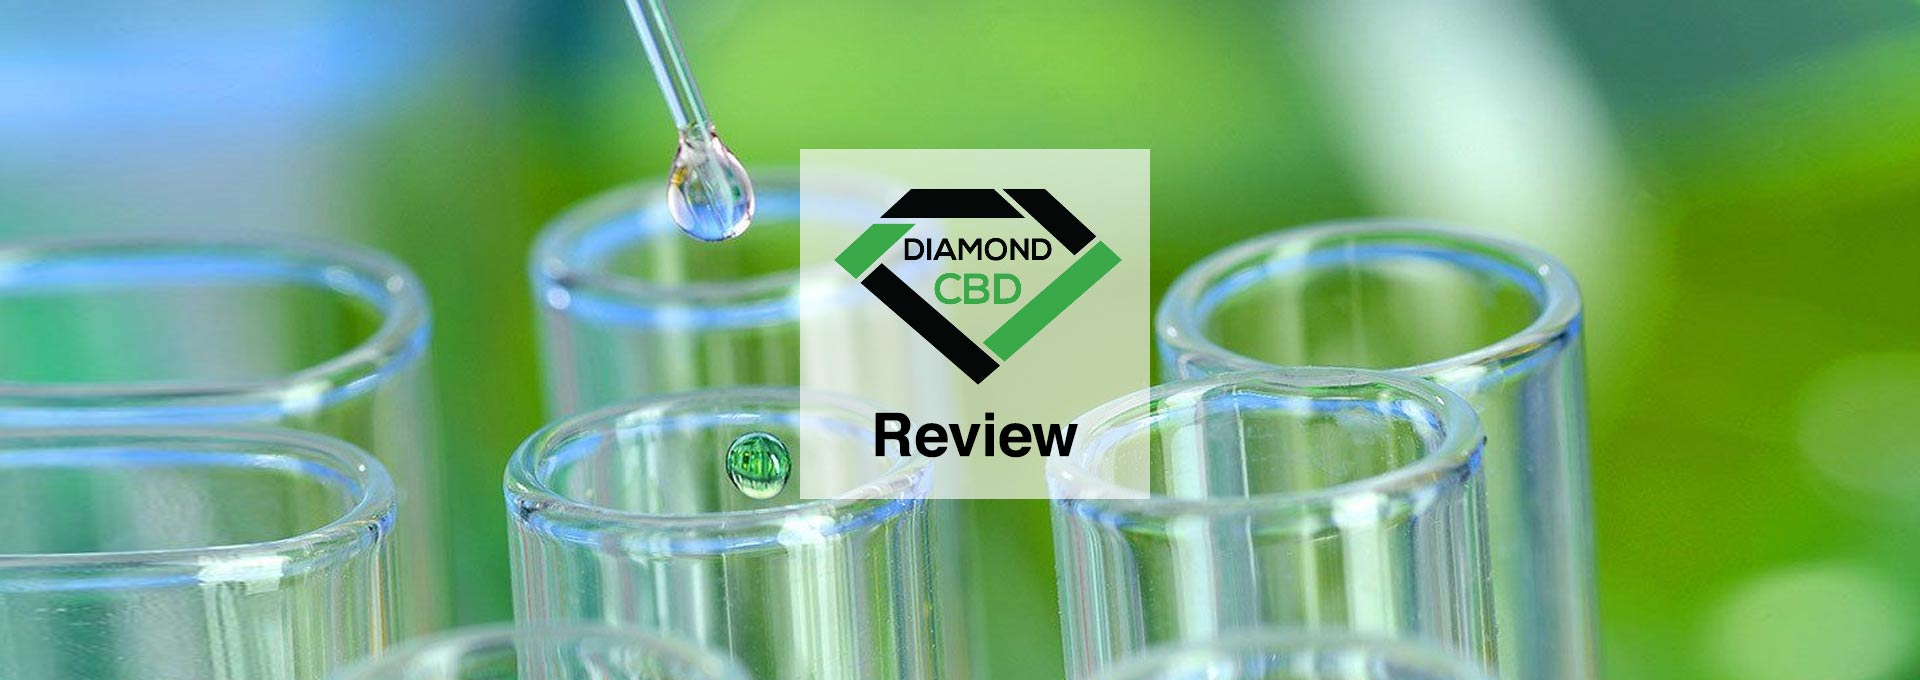 Diamond CBD Review